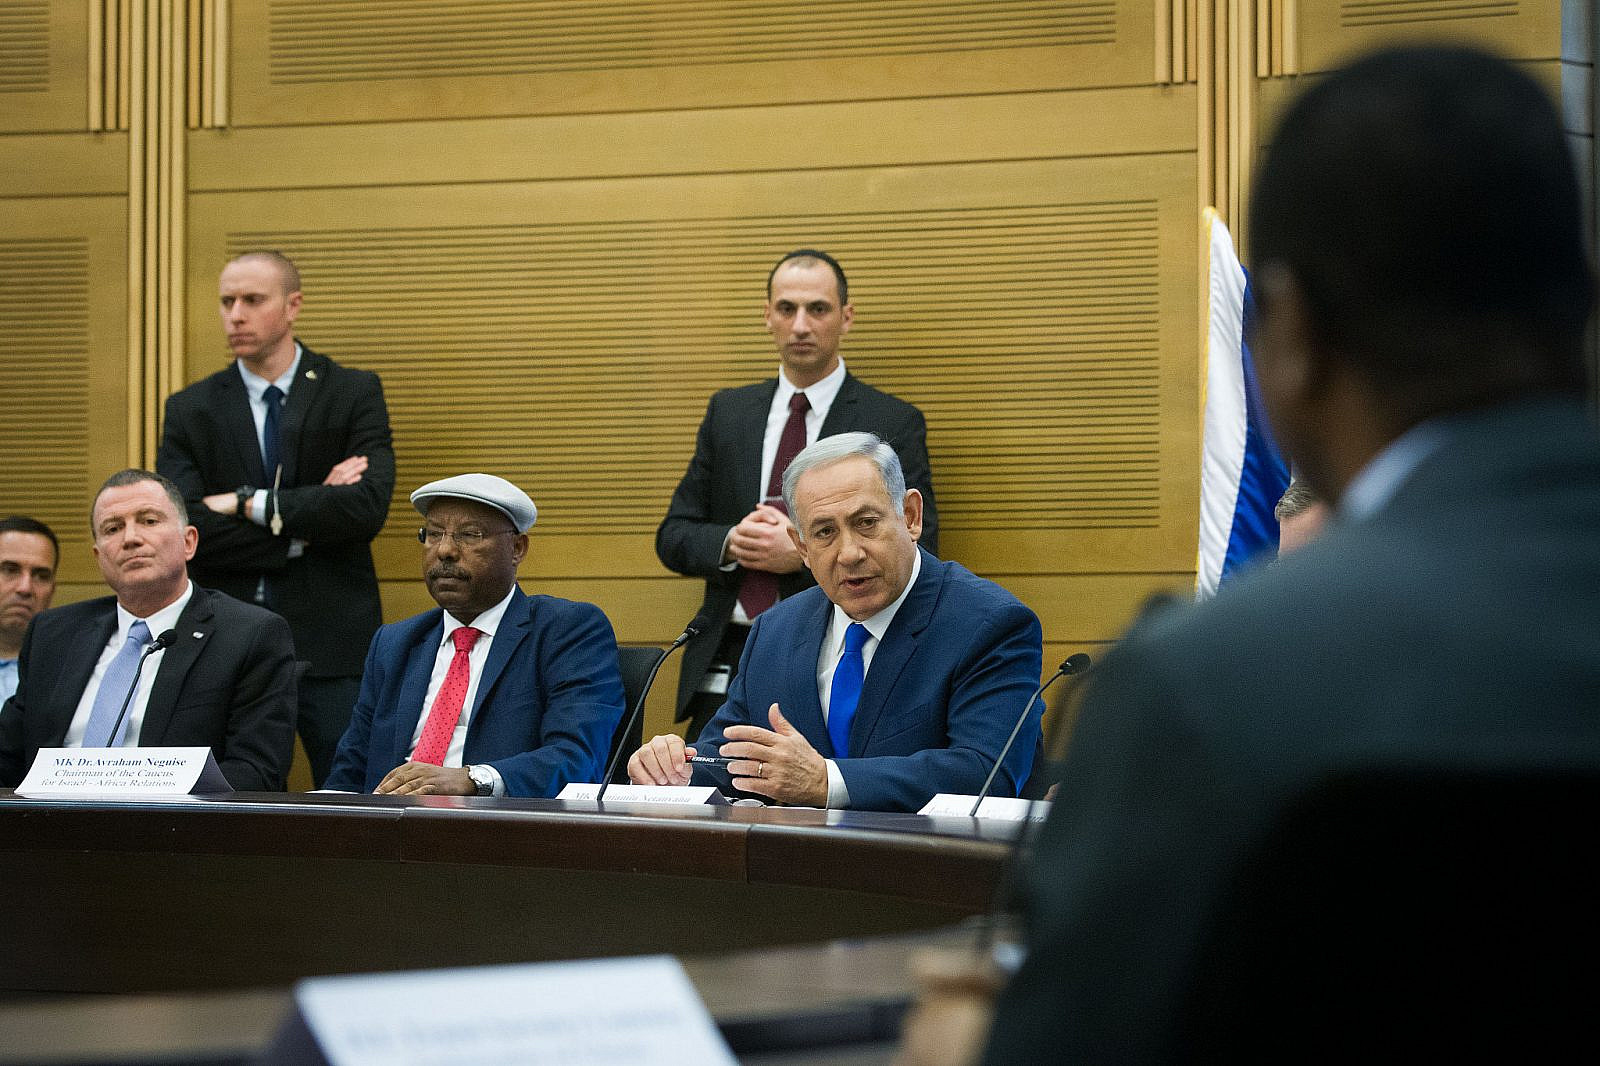 Israeli Prime Minister Benjamin Netanyahu attends a conference on Israeli-African relations, organized by Likud parliament member Avraham Negusie, at the Israeli parliament on February 29, 2016. (Miriam Alster/FLASH90)